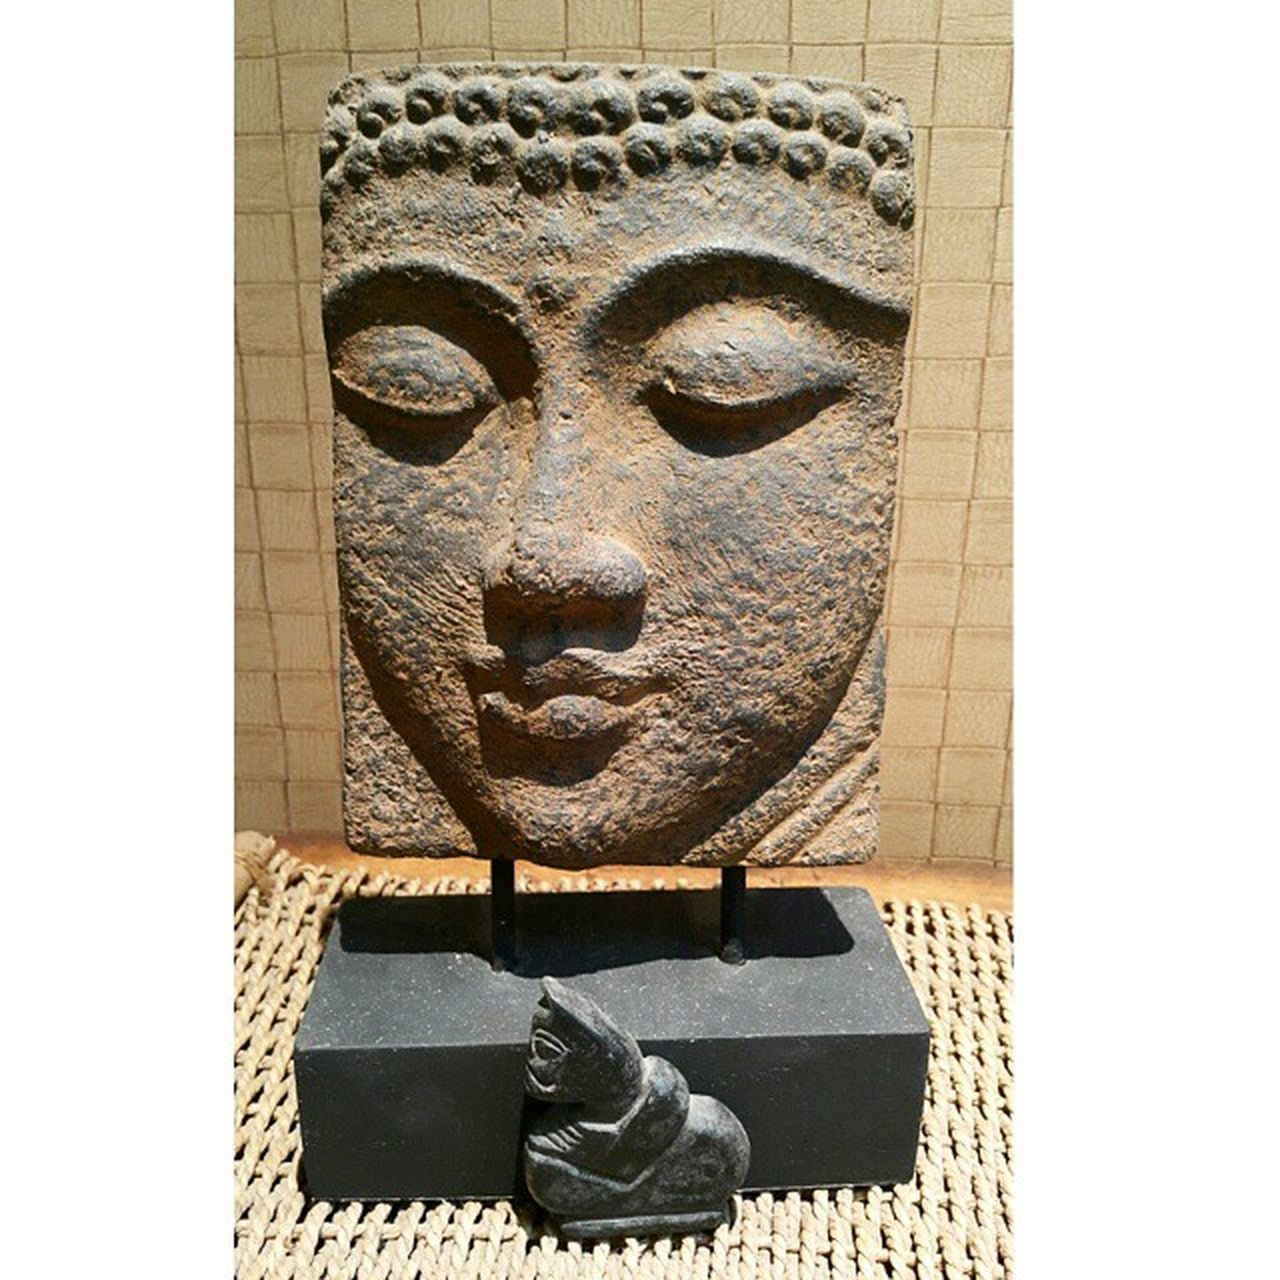 PrivateCollections PersonalCollections Collections Sculpture Artistic Art Buddha